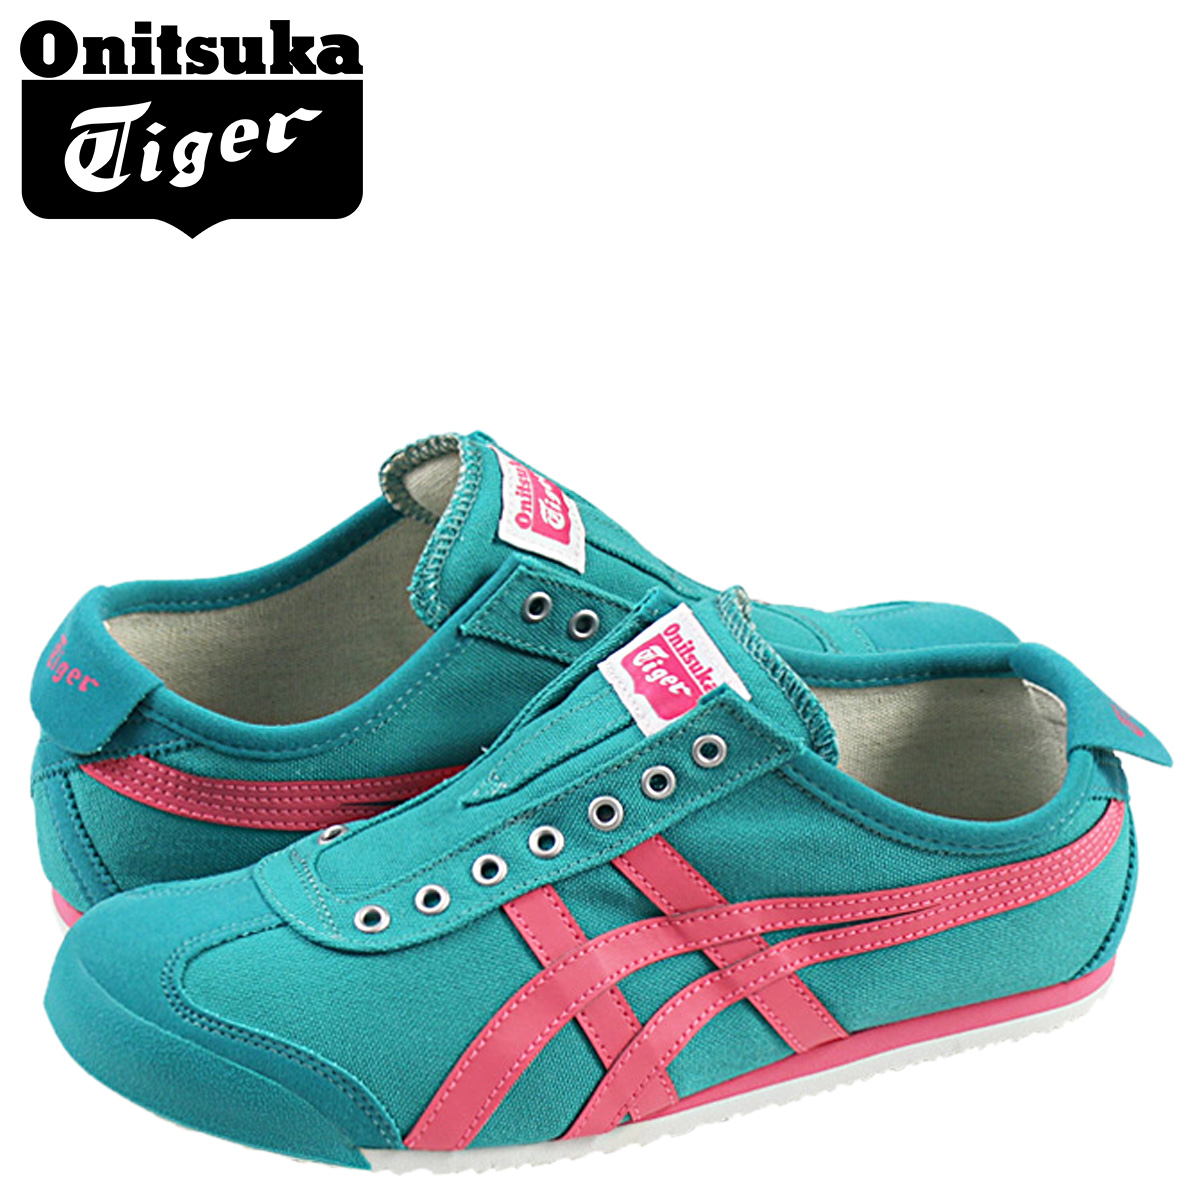 online store 192dd 727ce Onitsuka tiger ASICS Onitsuka Tiger asics Mexico 66 slip-ons sneakers  MEXICO 66 SLIP-ON TH3K0N-7818 men gap Dis shoes green